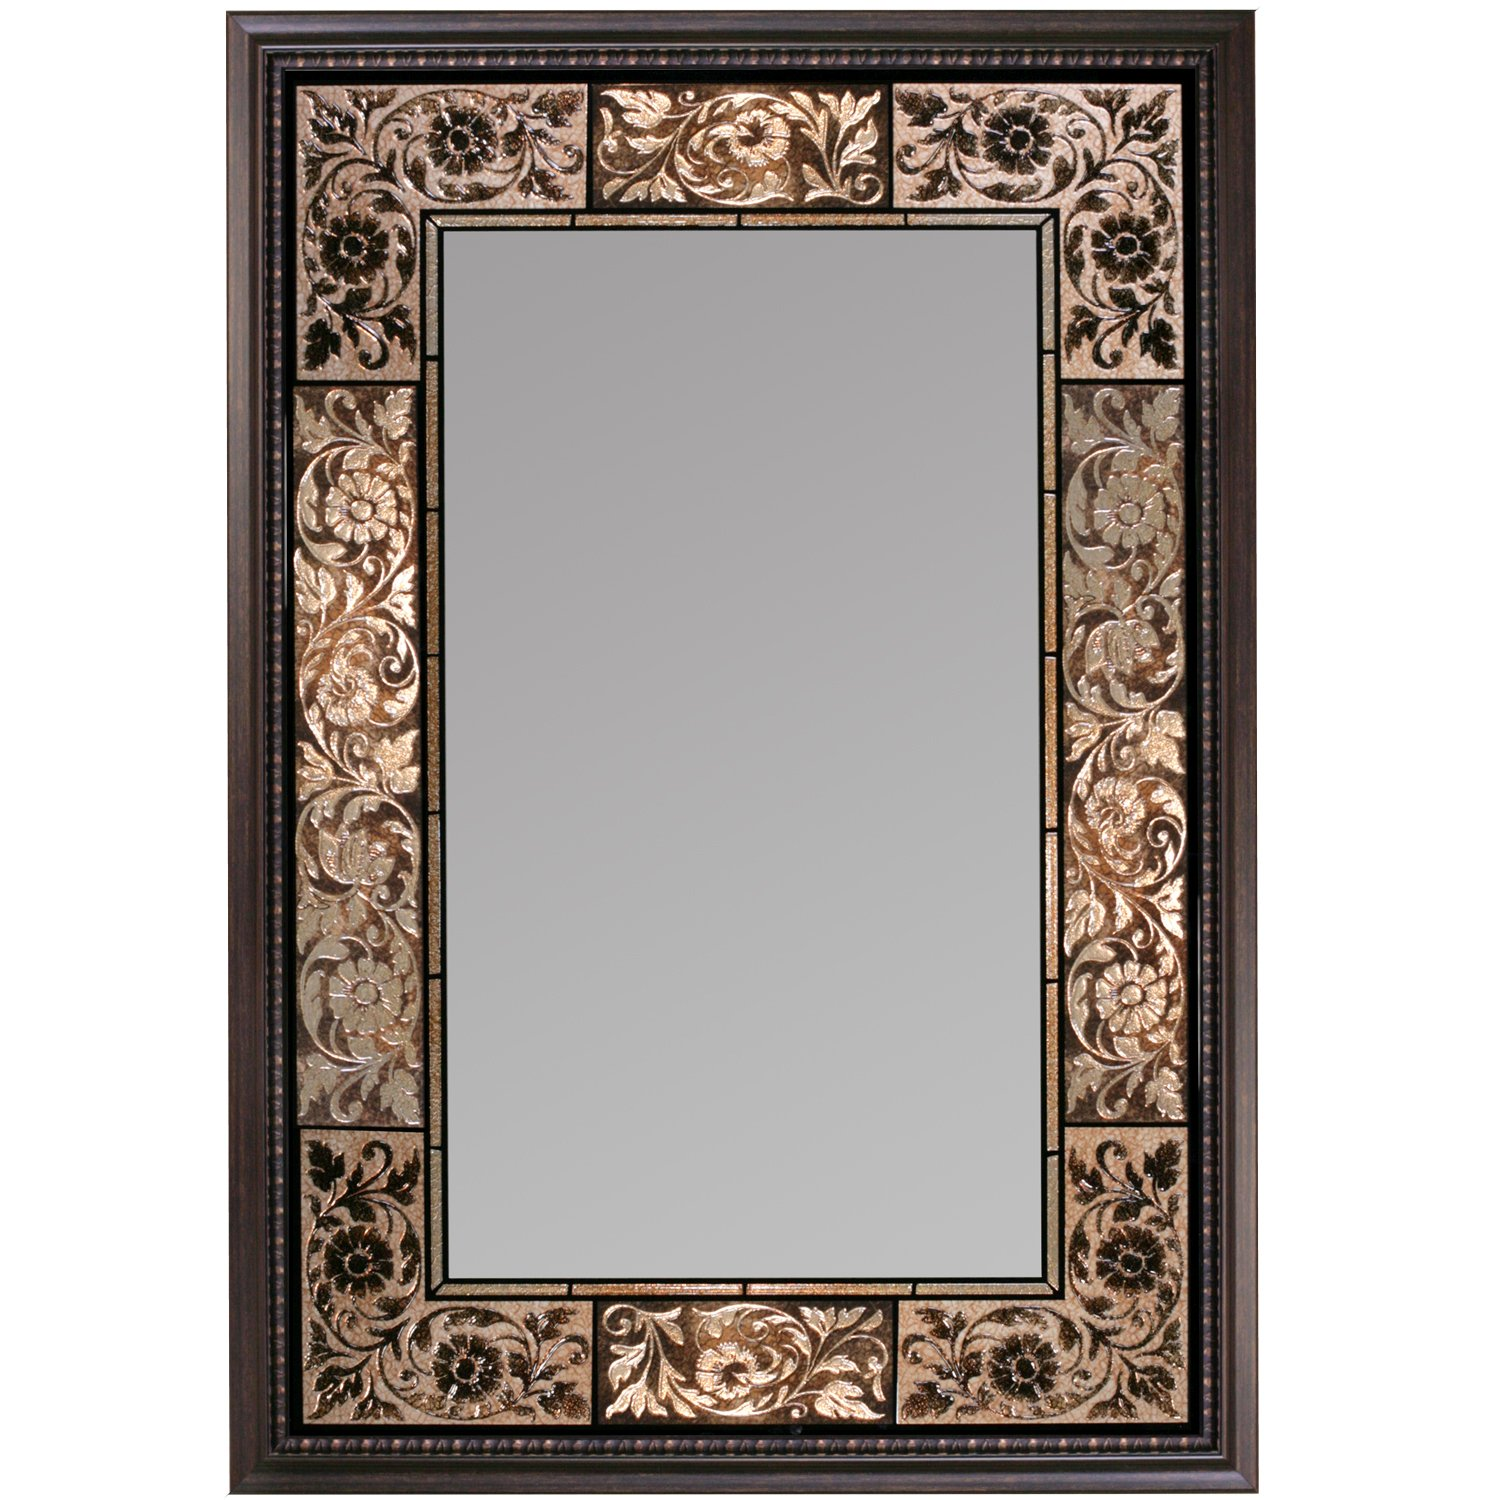 framed in a complimentary dark traditional frame handcrafted in the